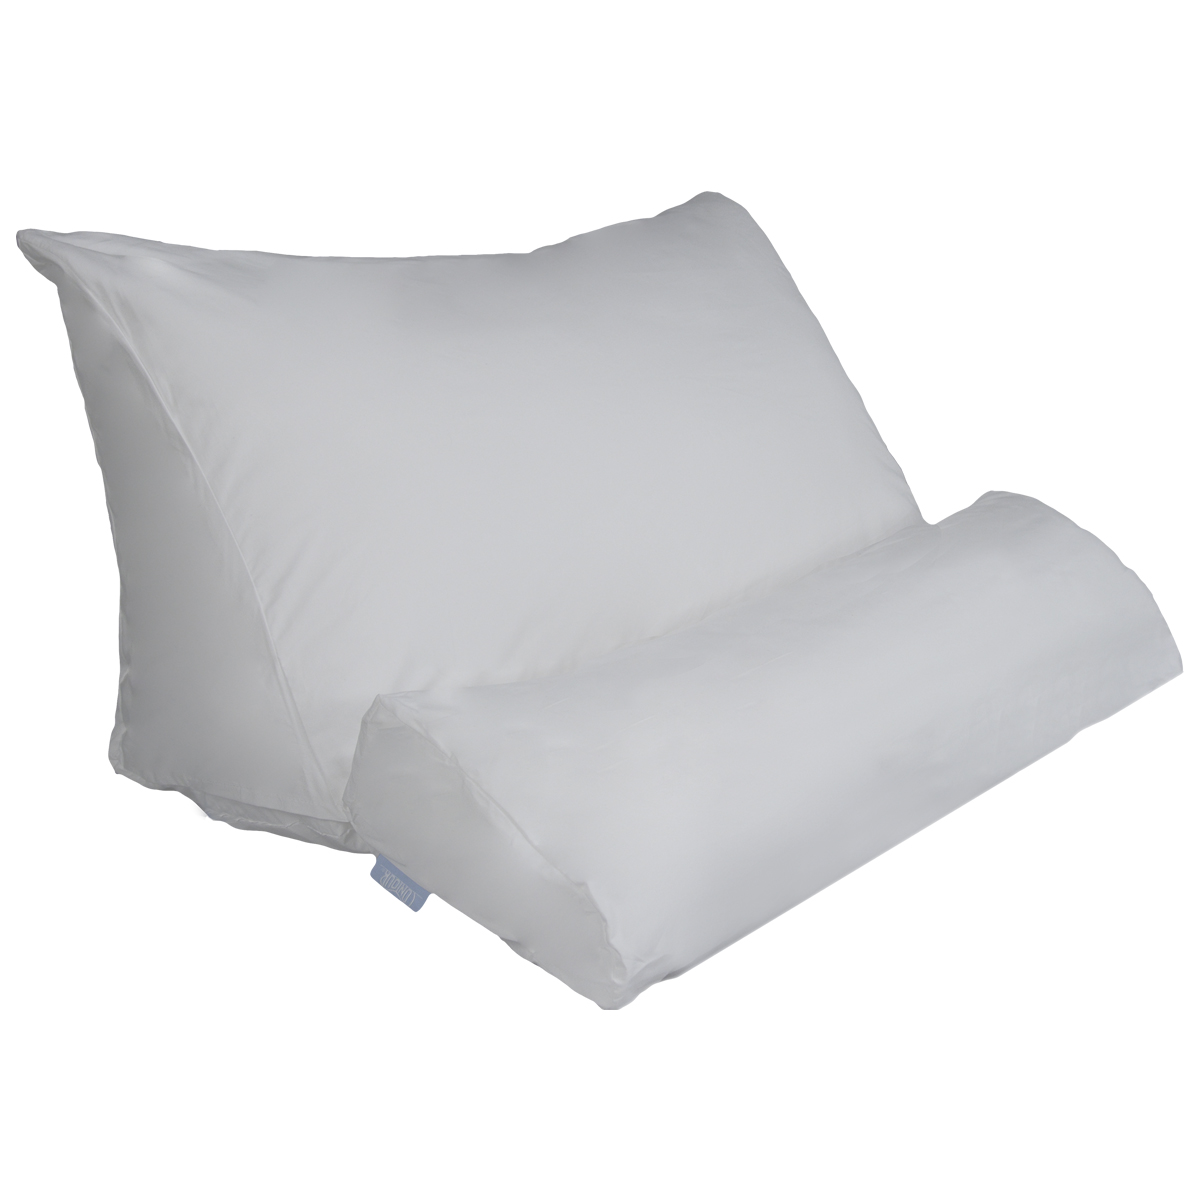 dp health amazon aeml care flip contour standard products personal com in pillow